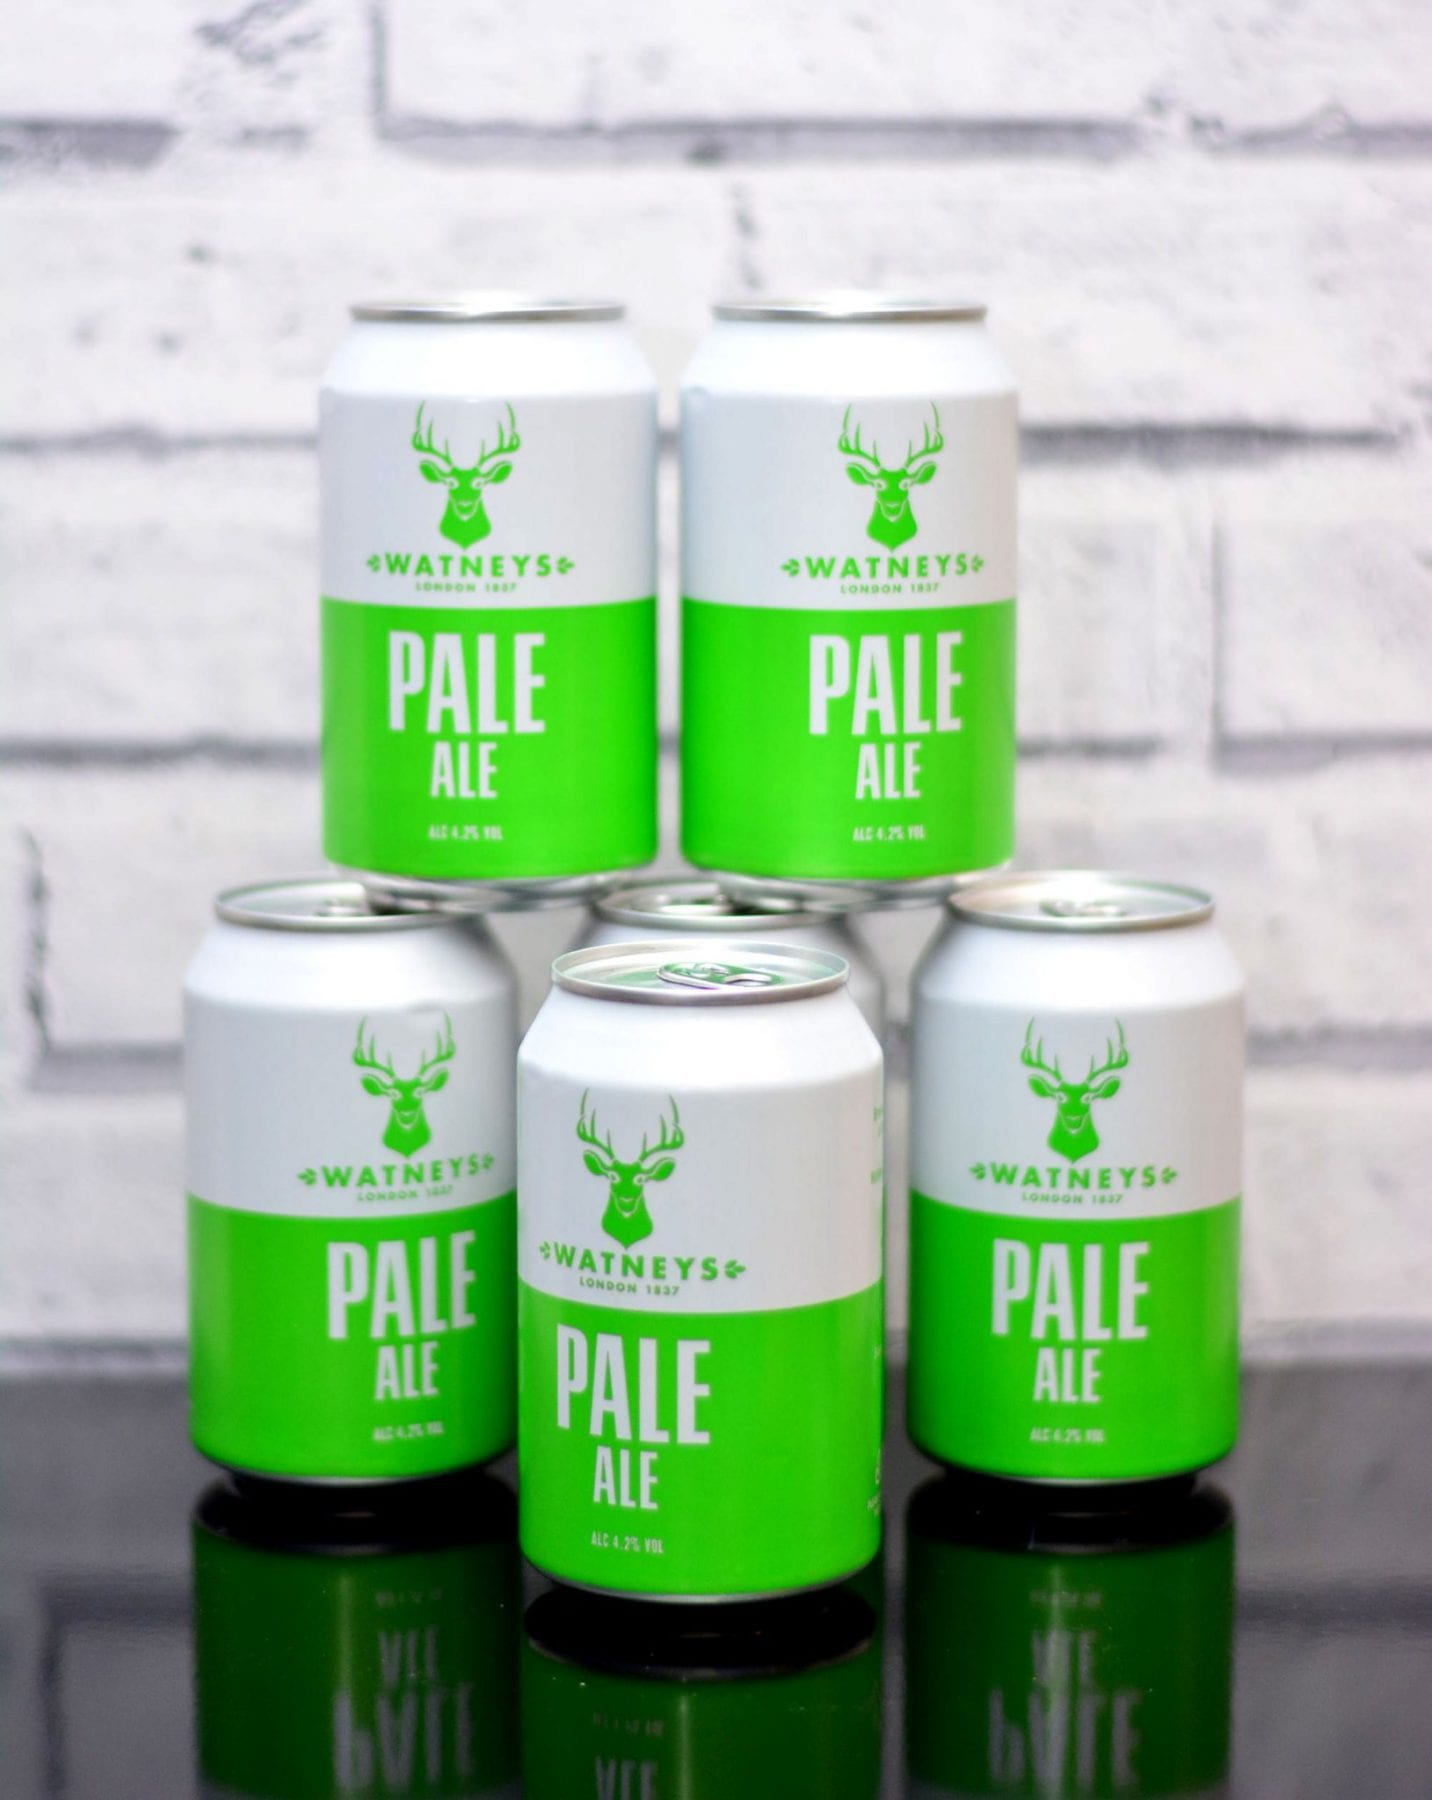 Image of can design for Watneys Pale Ale, designed by branding designer and graphic designer Jessica Croome of Perth Western Australia